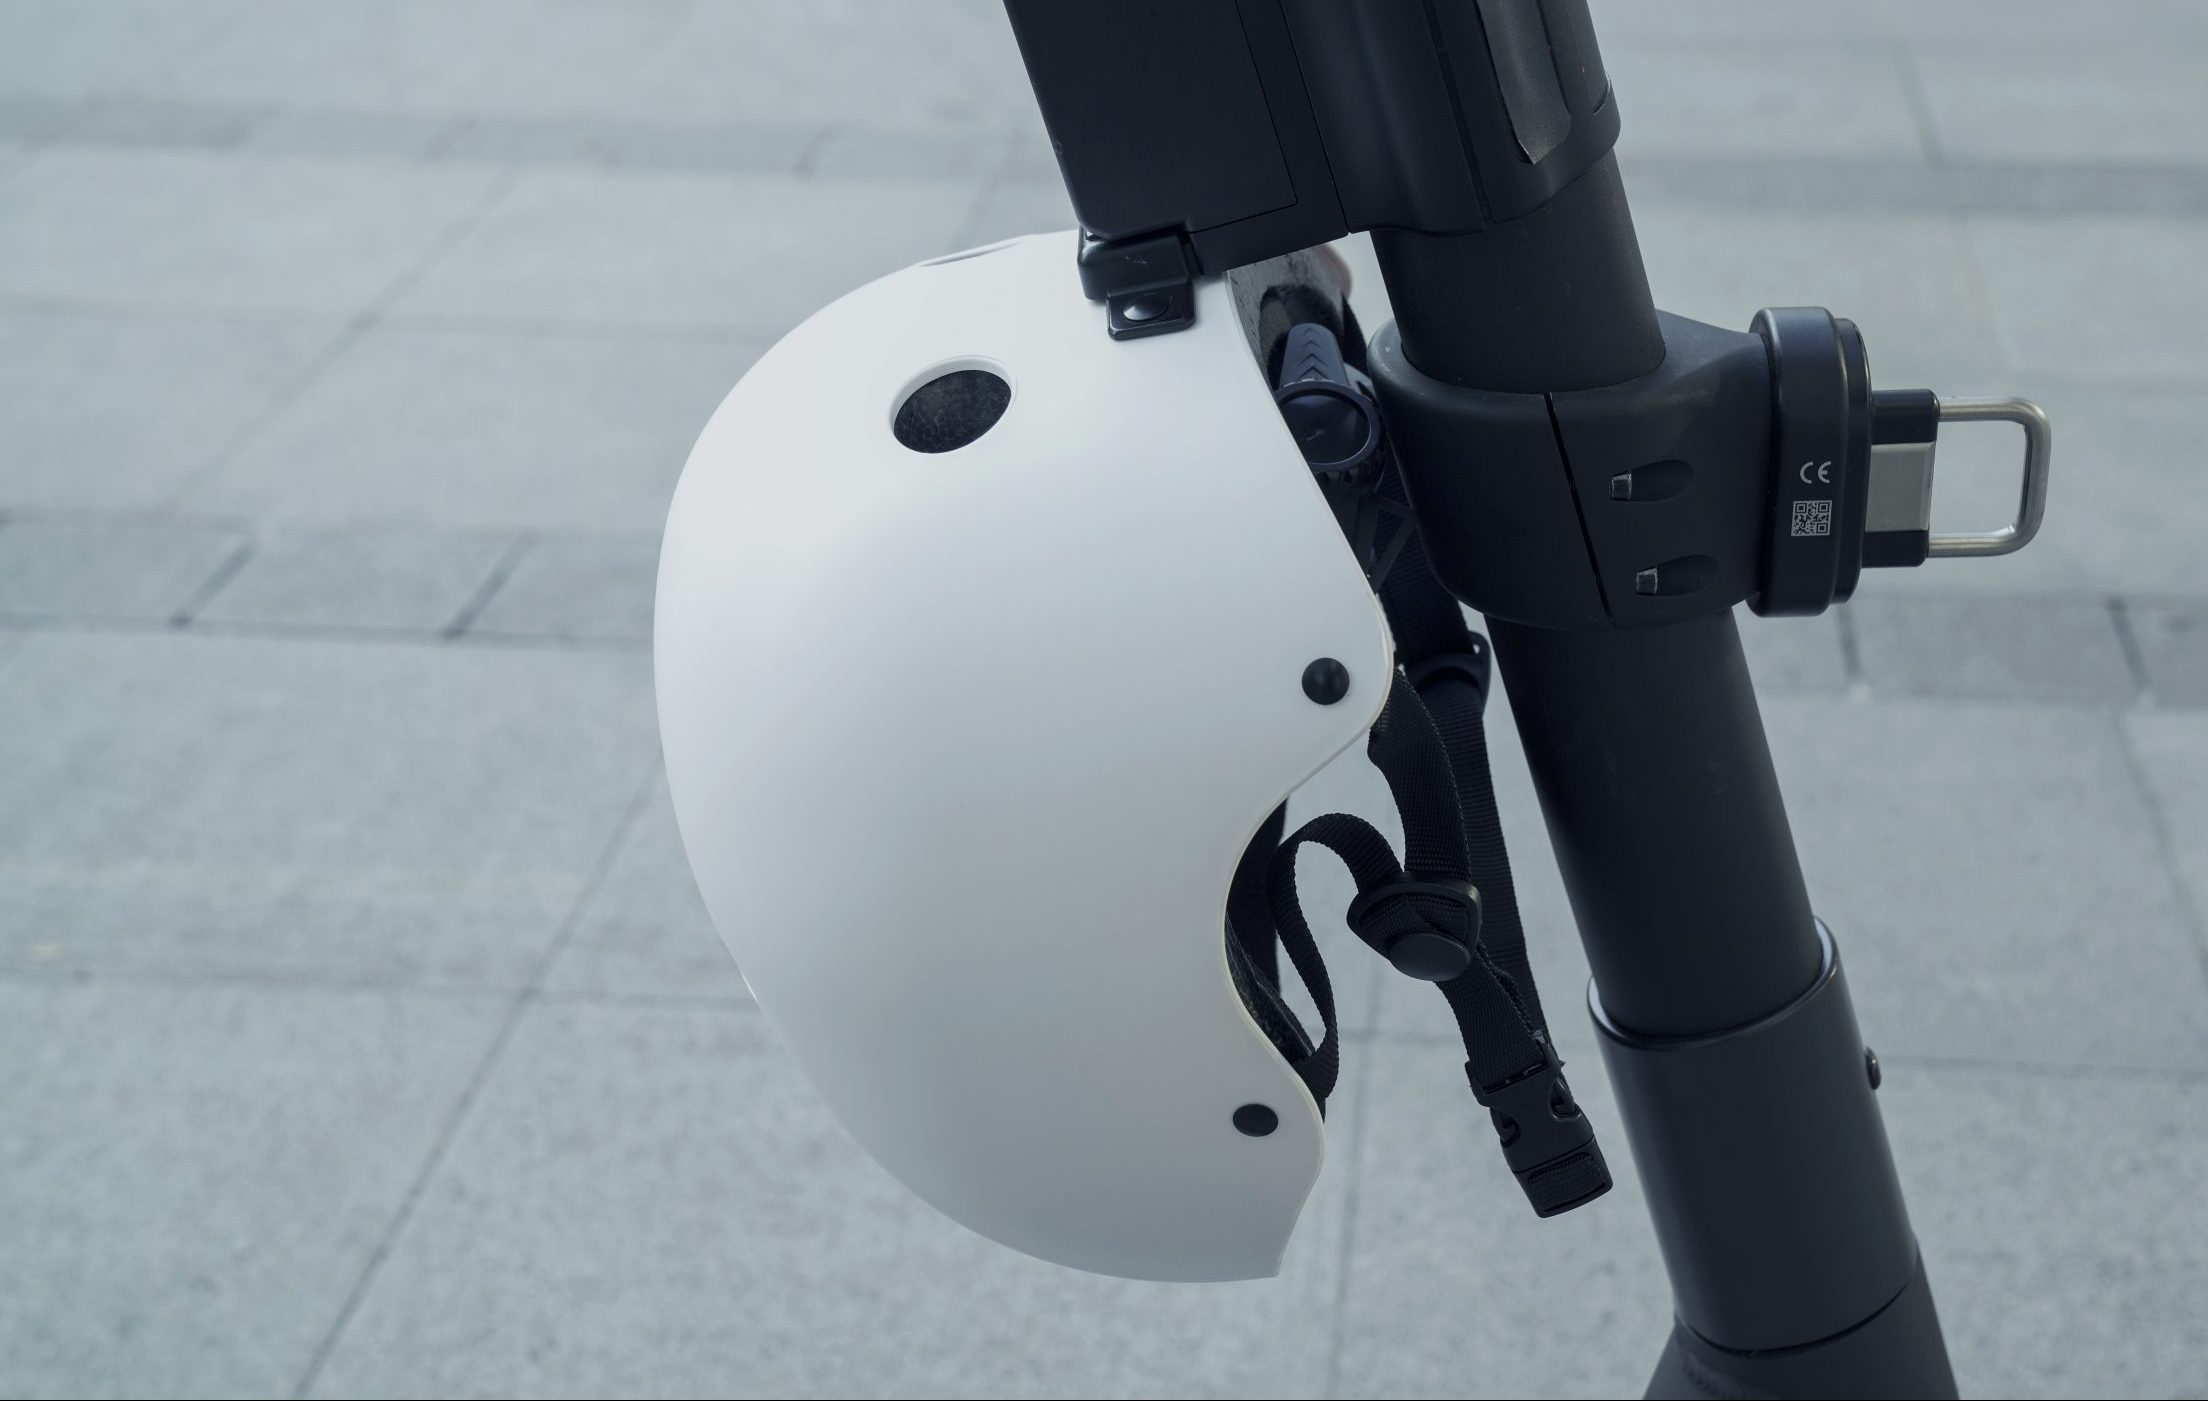 The Role of Helmet Lock Kits in E-Scooter and Micromobility Safety